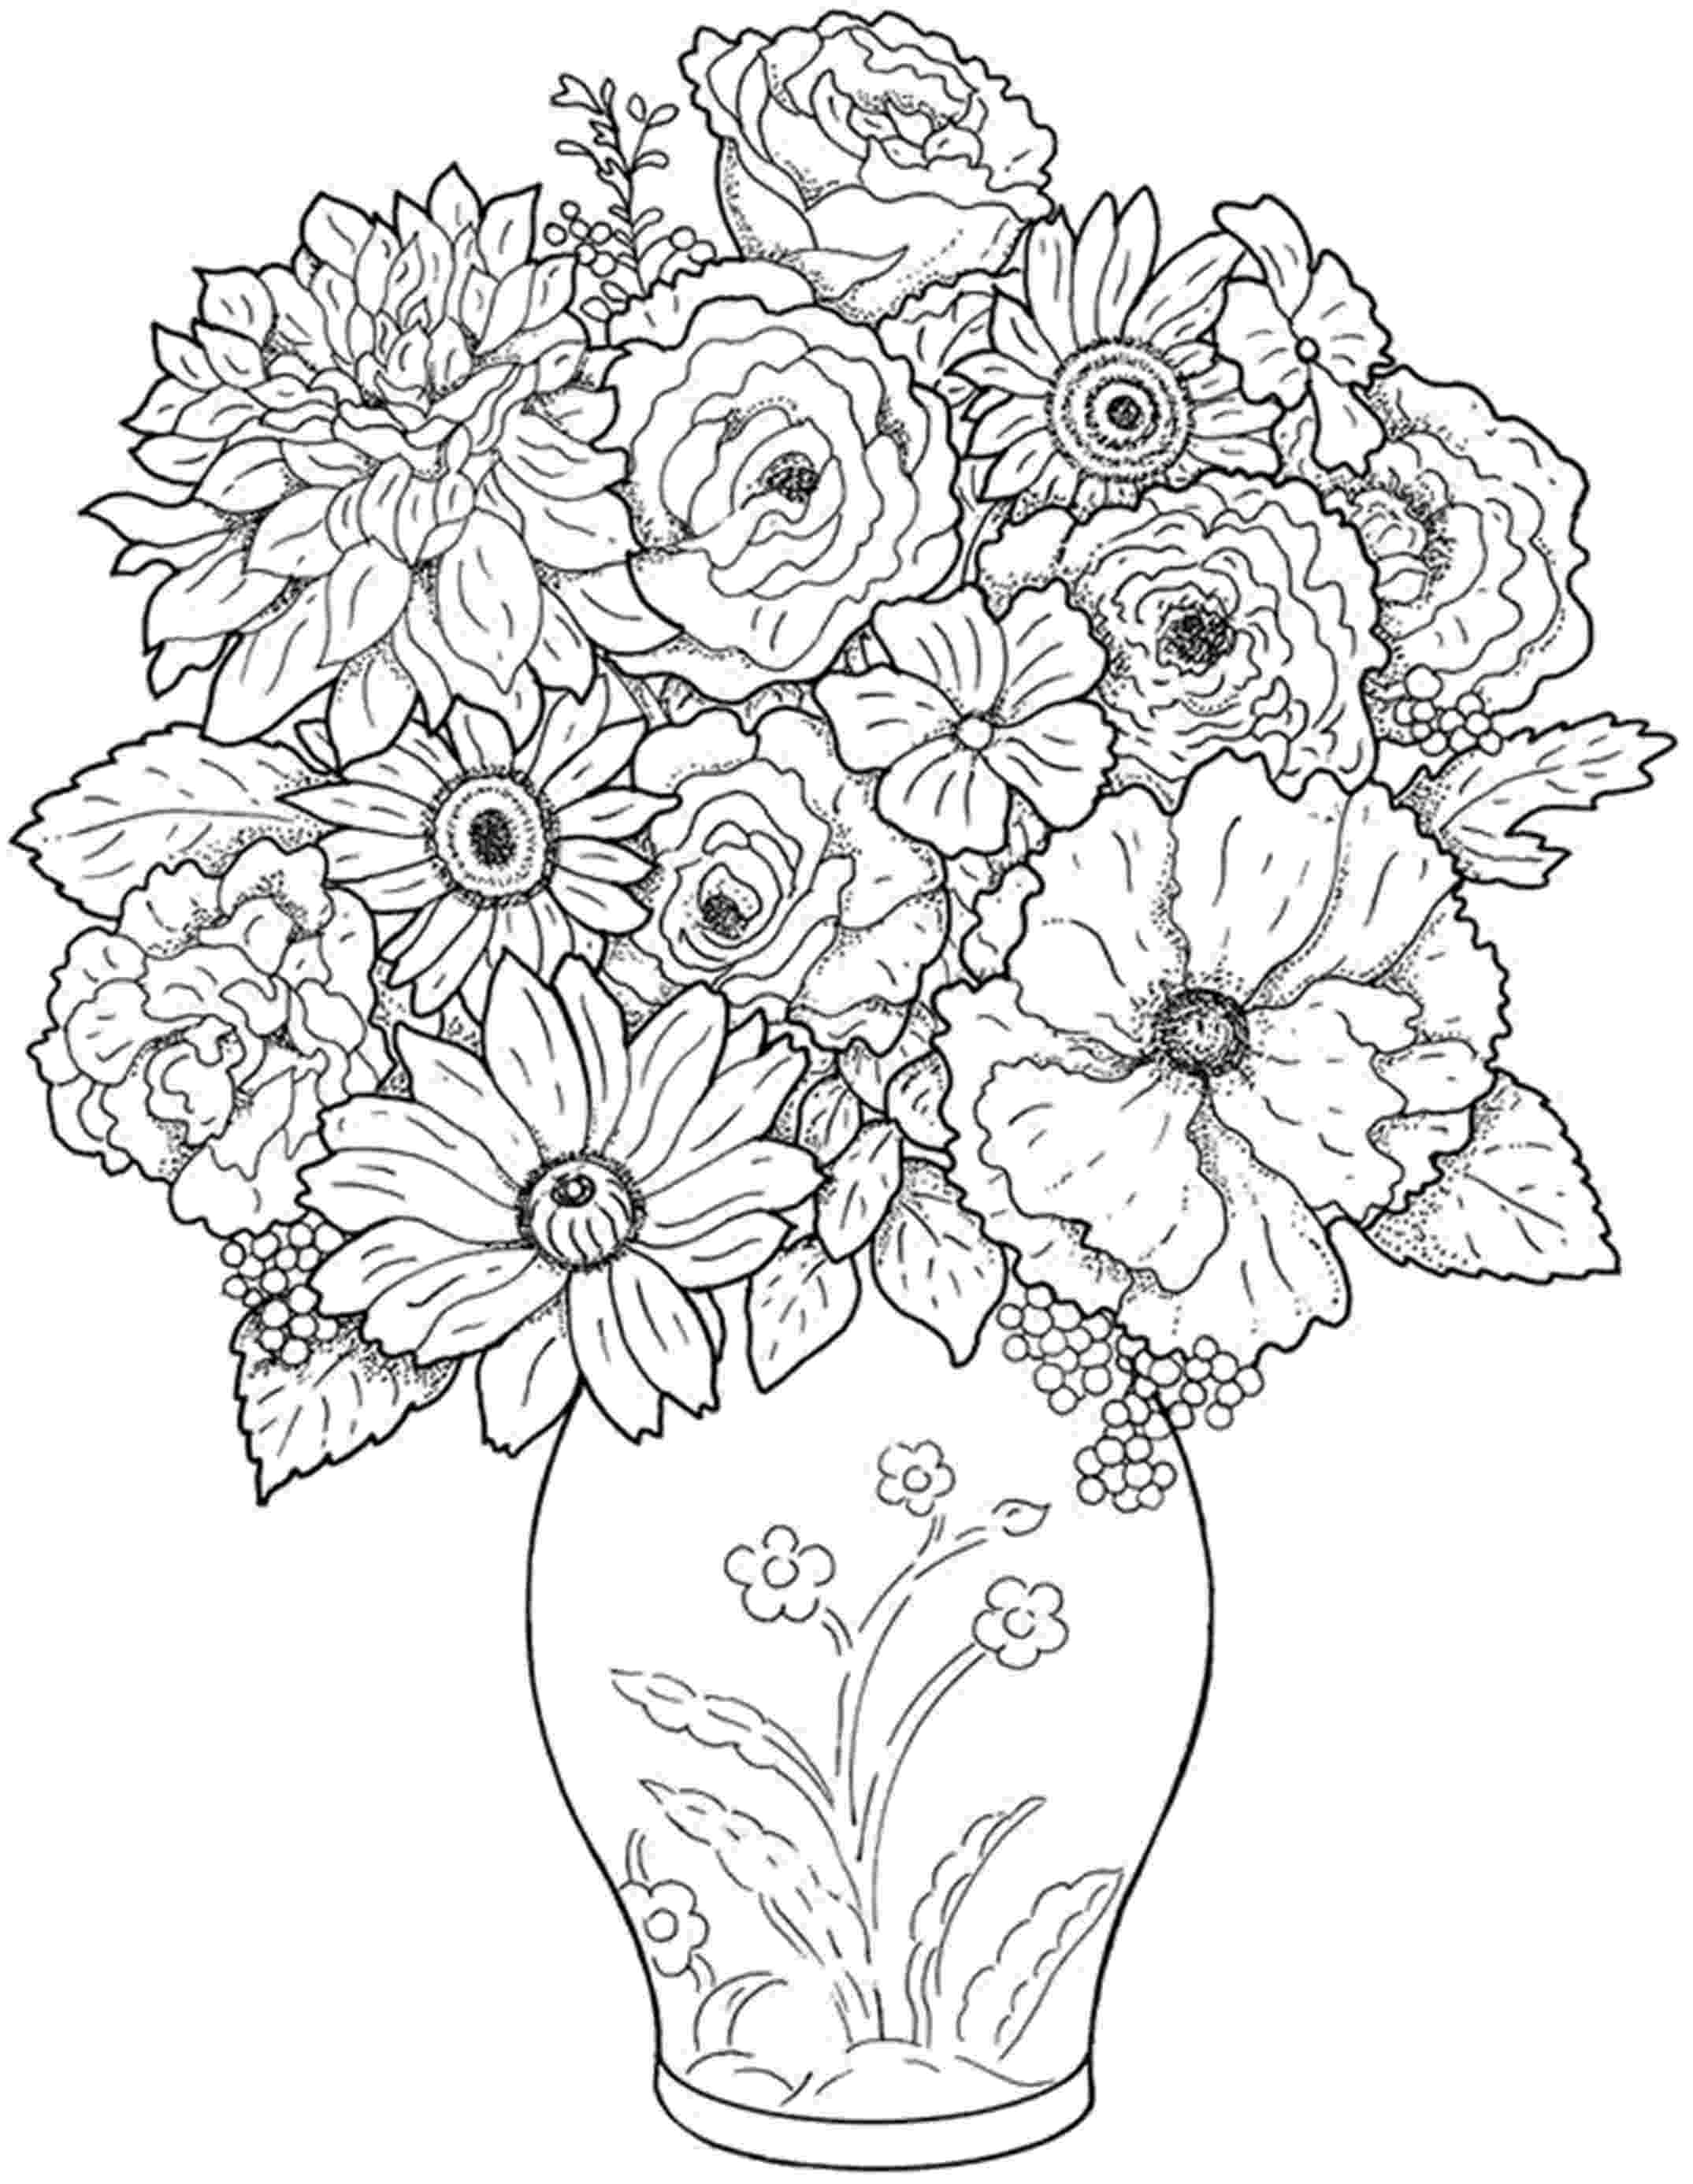 flower coloring pages printables free printable flower coloring pages for kids best flower pages coloring printables